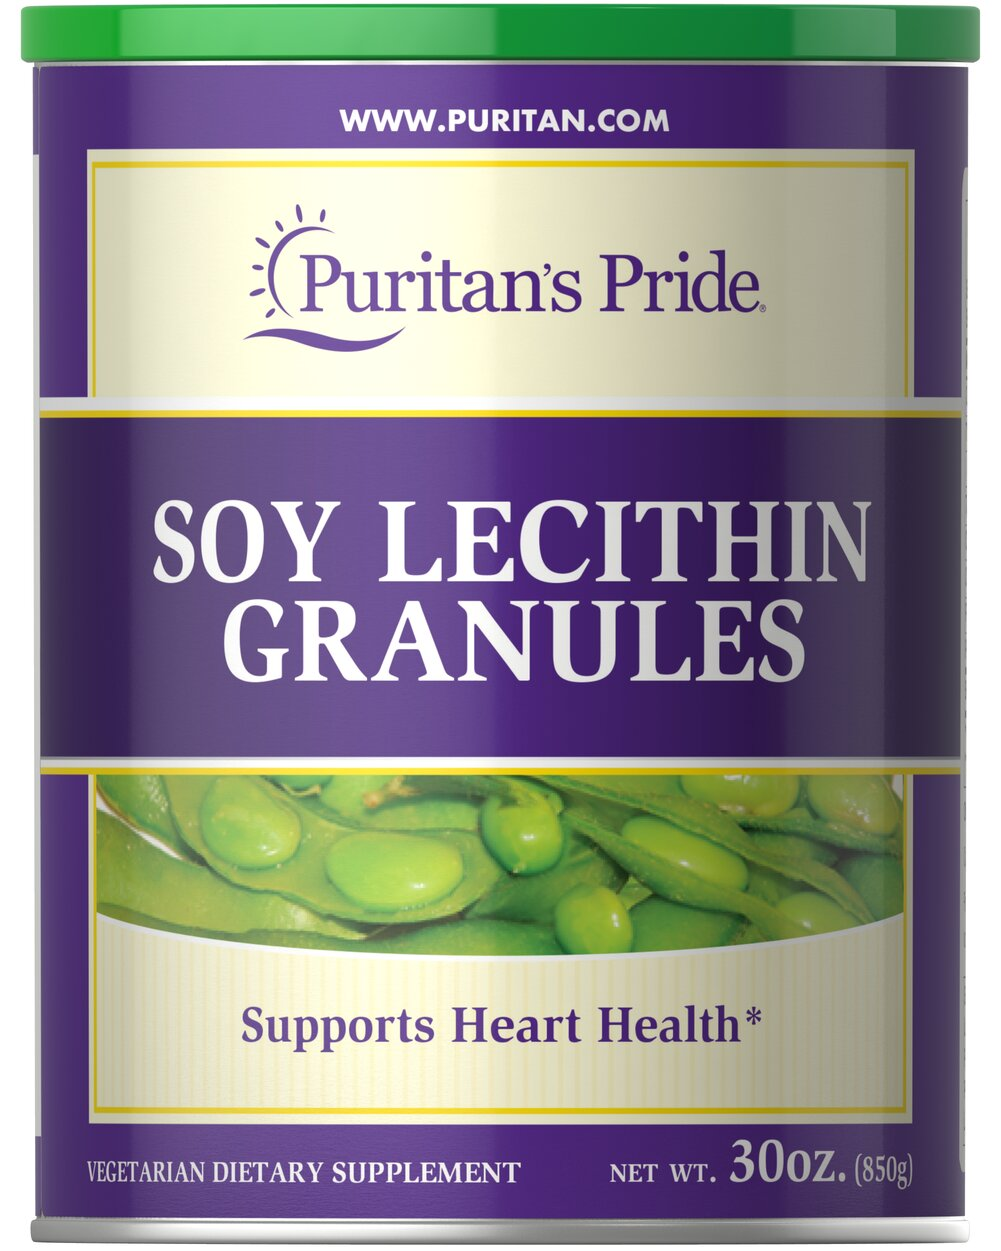 Soy Lecithin Granules 1680 mg <p>95% SOY PHOSPHATIDES </p><p>Finest Quality</p> <p>Supports Mental Function & Nerve Cell Health**</p><p>Lecithin is an important natural source of choline, inositol, and linoleic acid. Choline and Inositol are vital components of all cell membranes, and play important roles in cell growth and function.**</p> 30 oz Granules 1680 mg $29.99